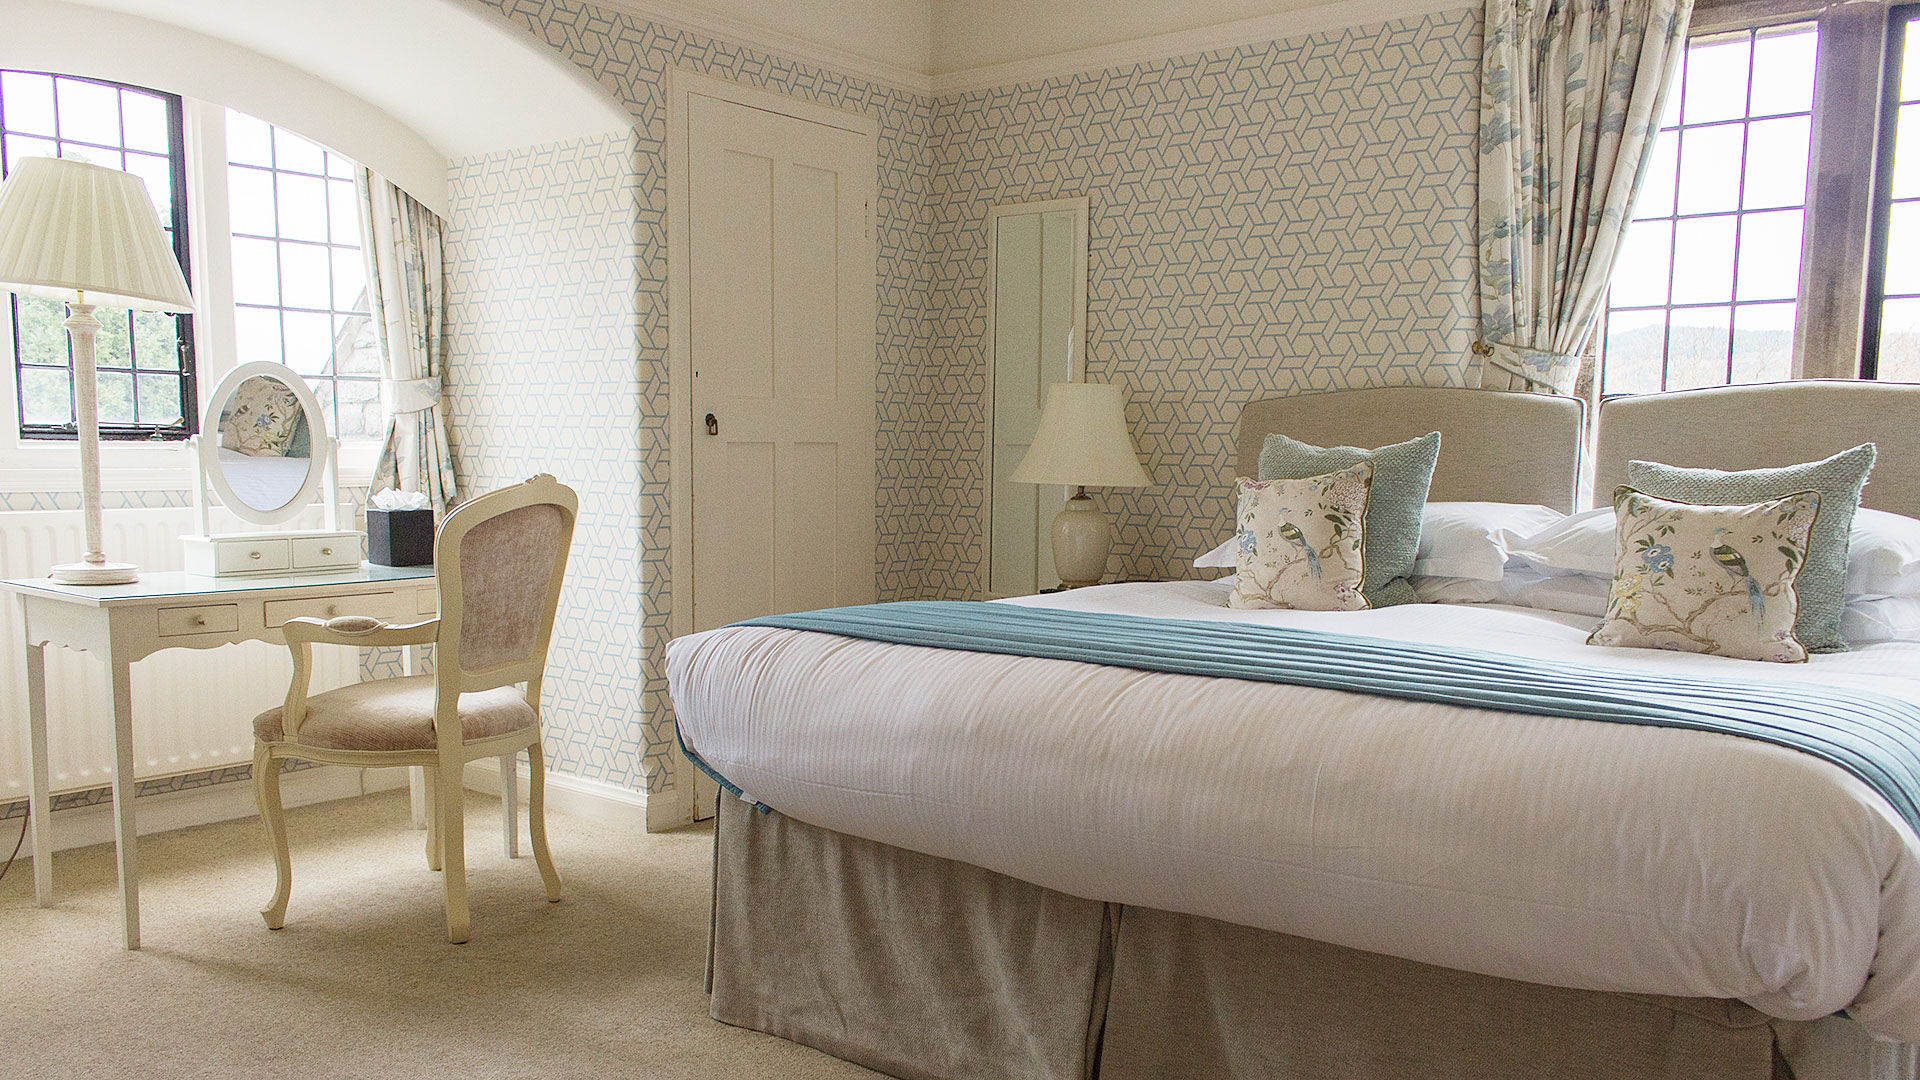 Cragwood Hotel Lake View Bedrooms Snippet Image